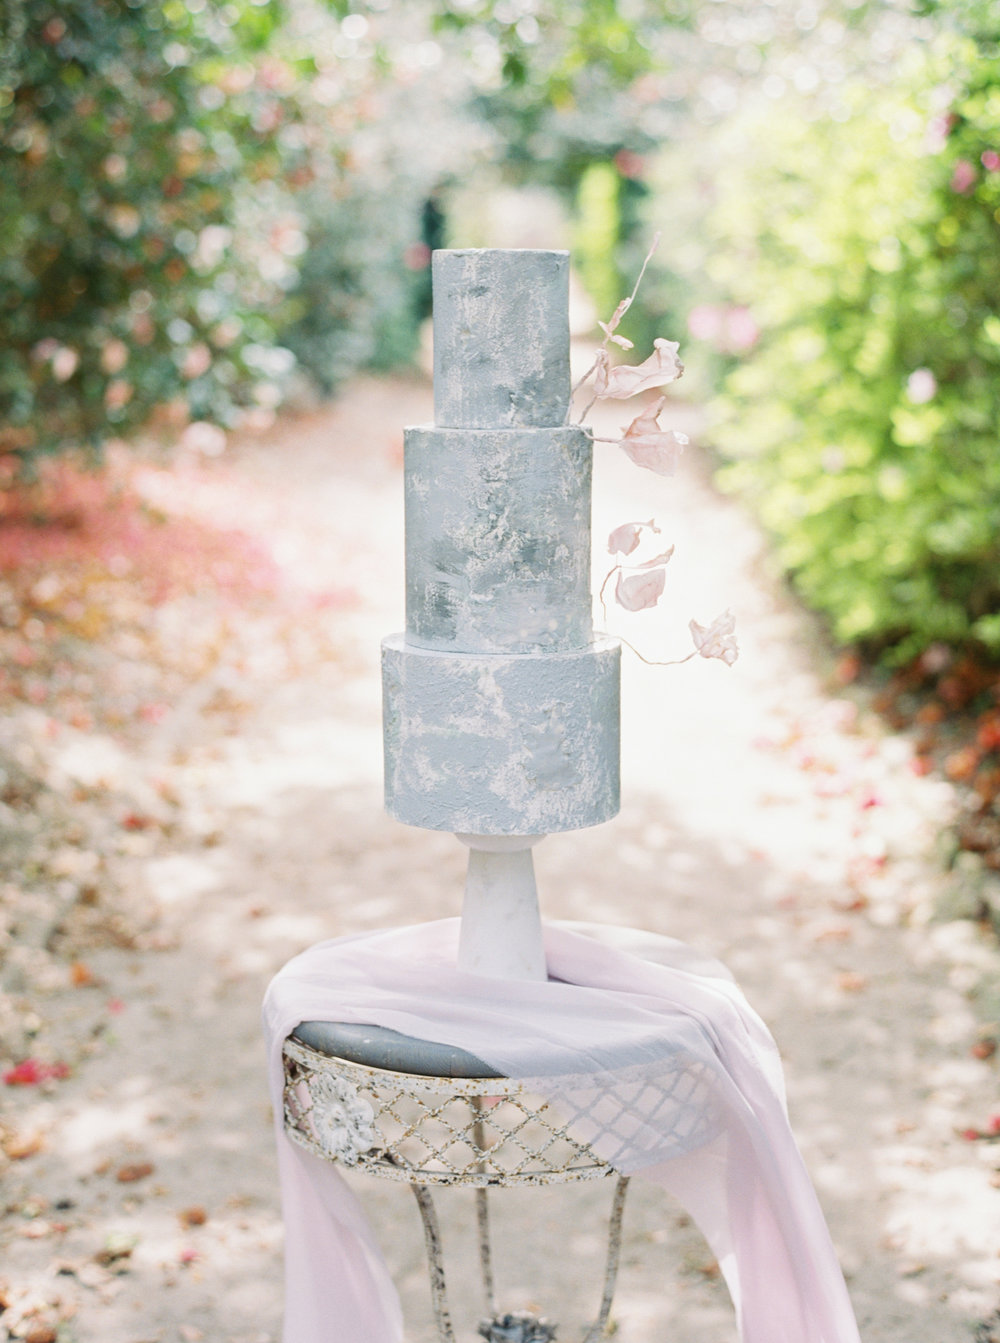 CUSTOM CAKES - photography by Jessica gold